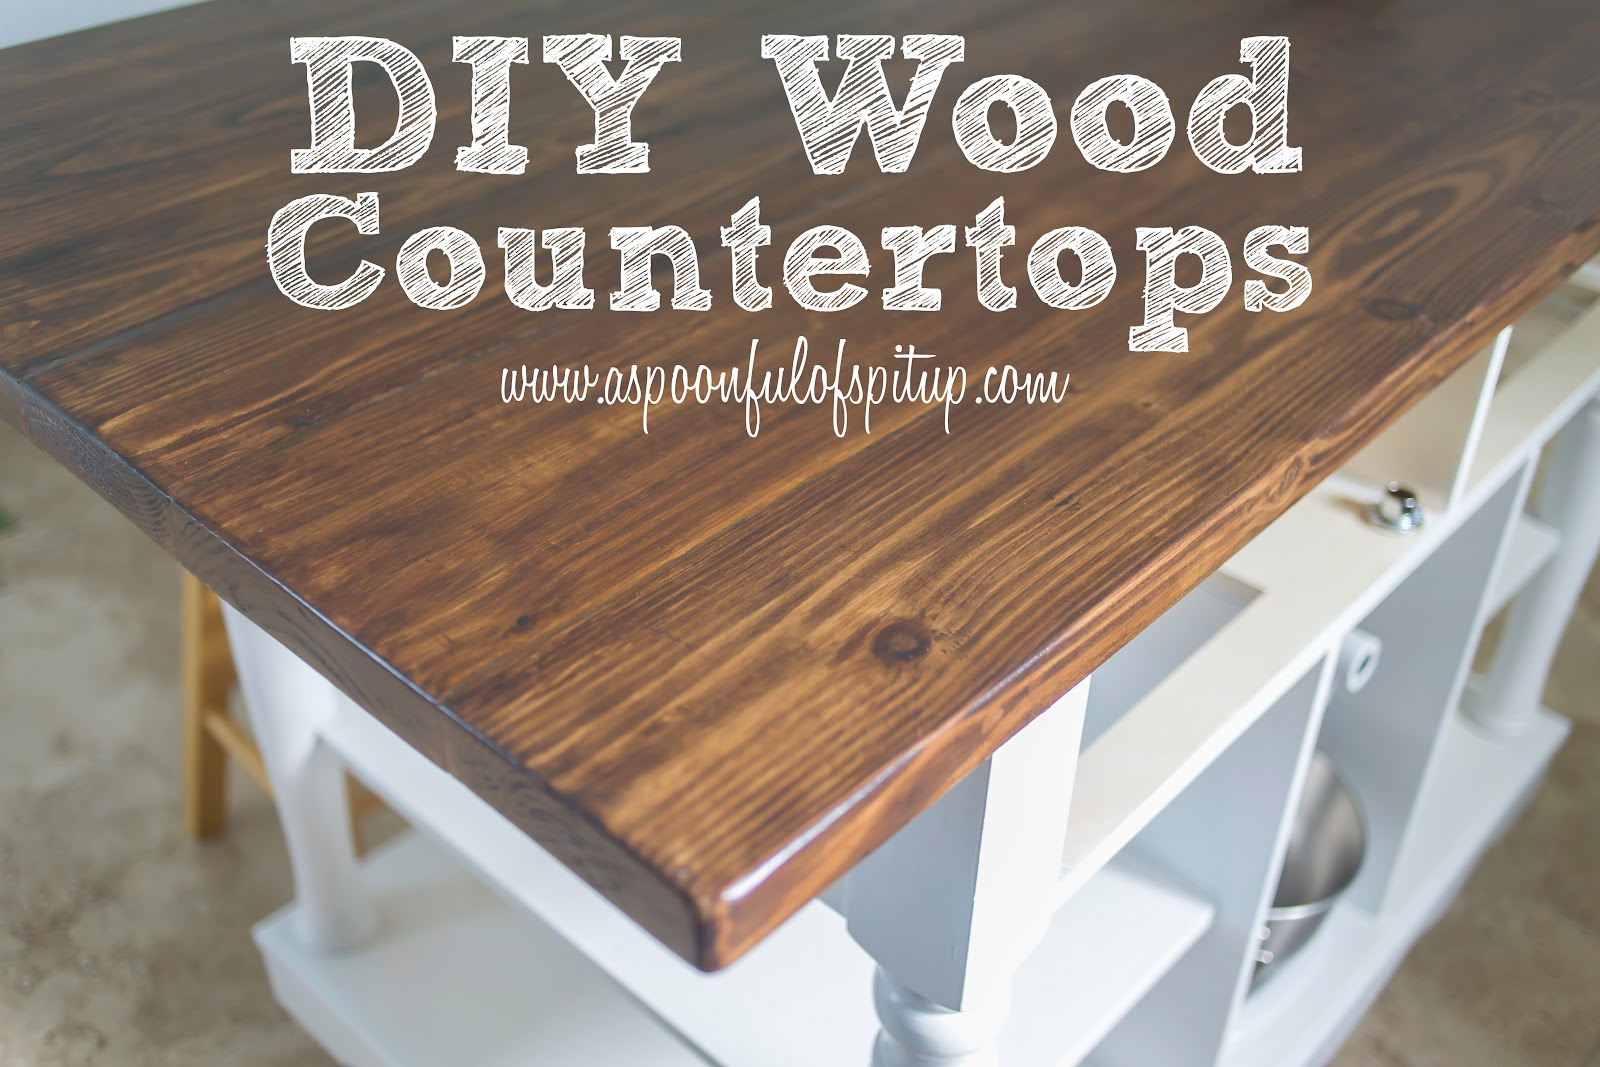 Woodwork Solid wood countertops diy Plans PDF Download Free diy crafts ...